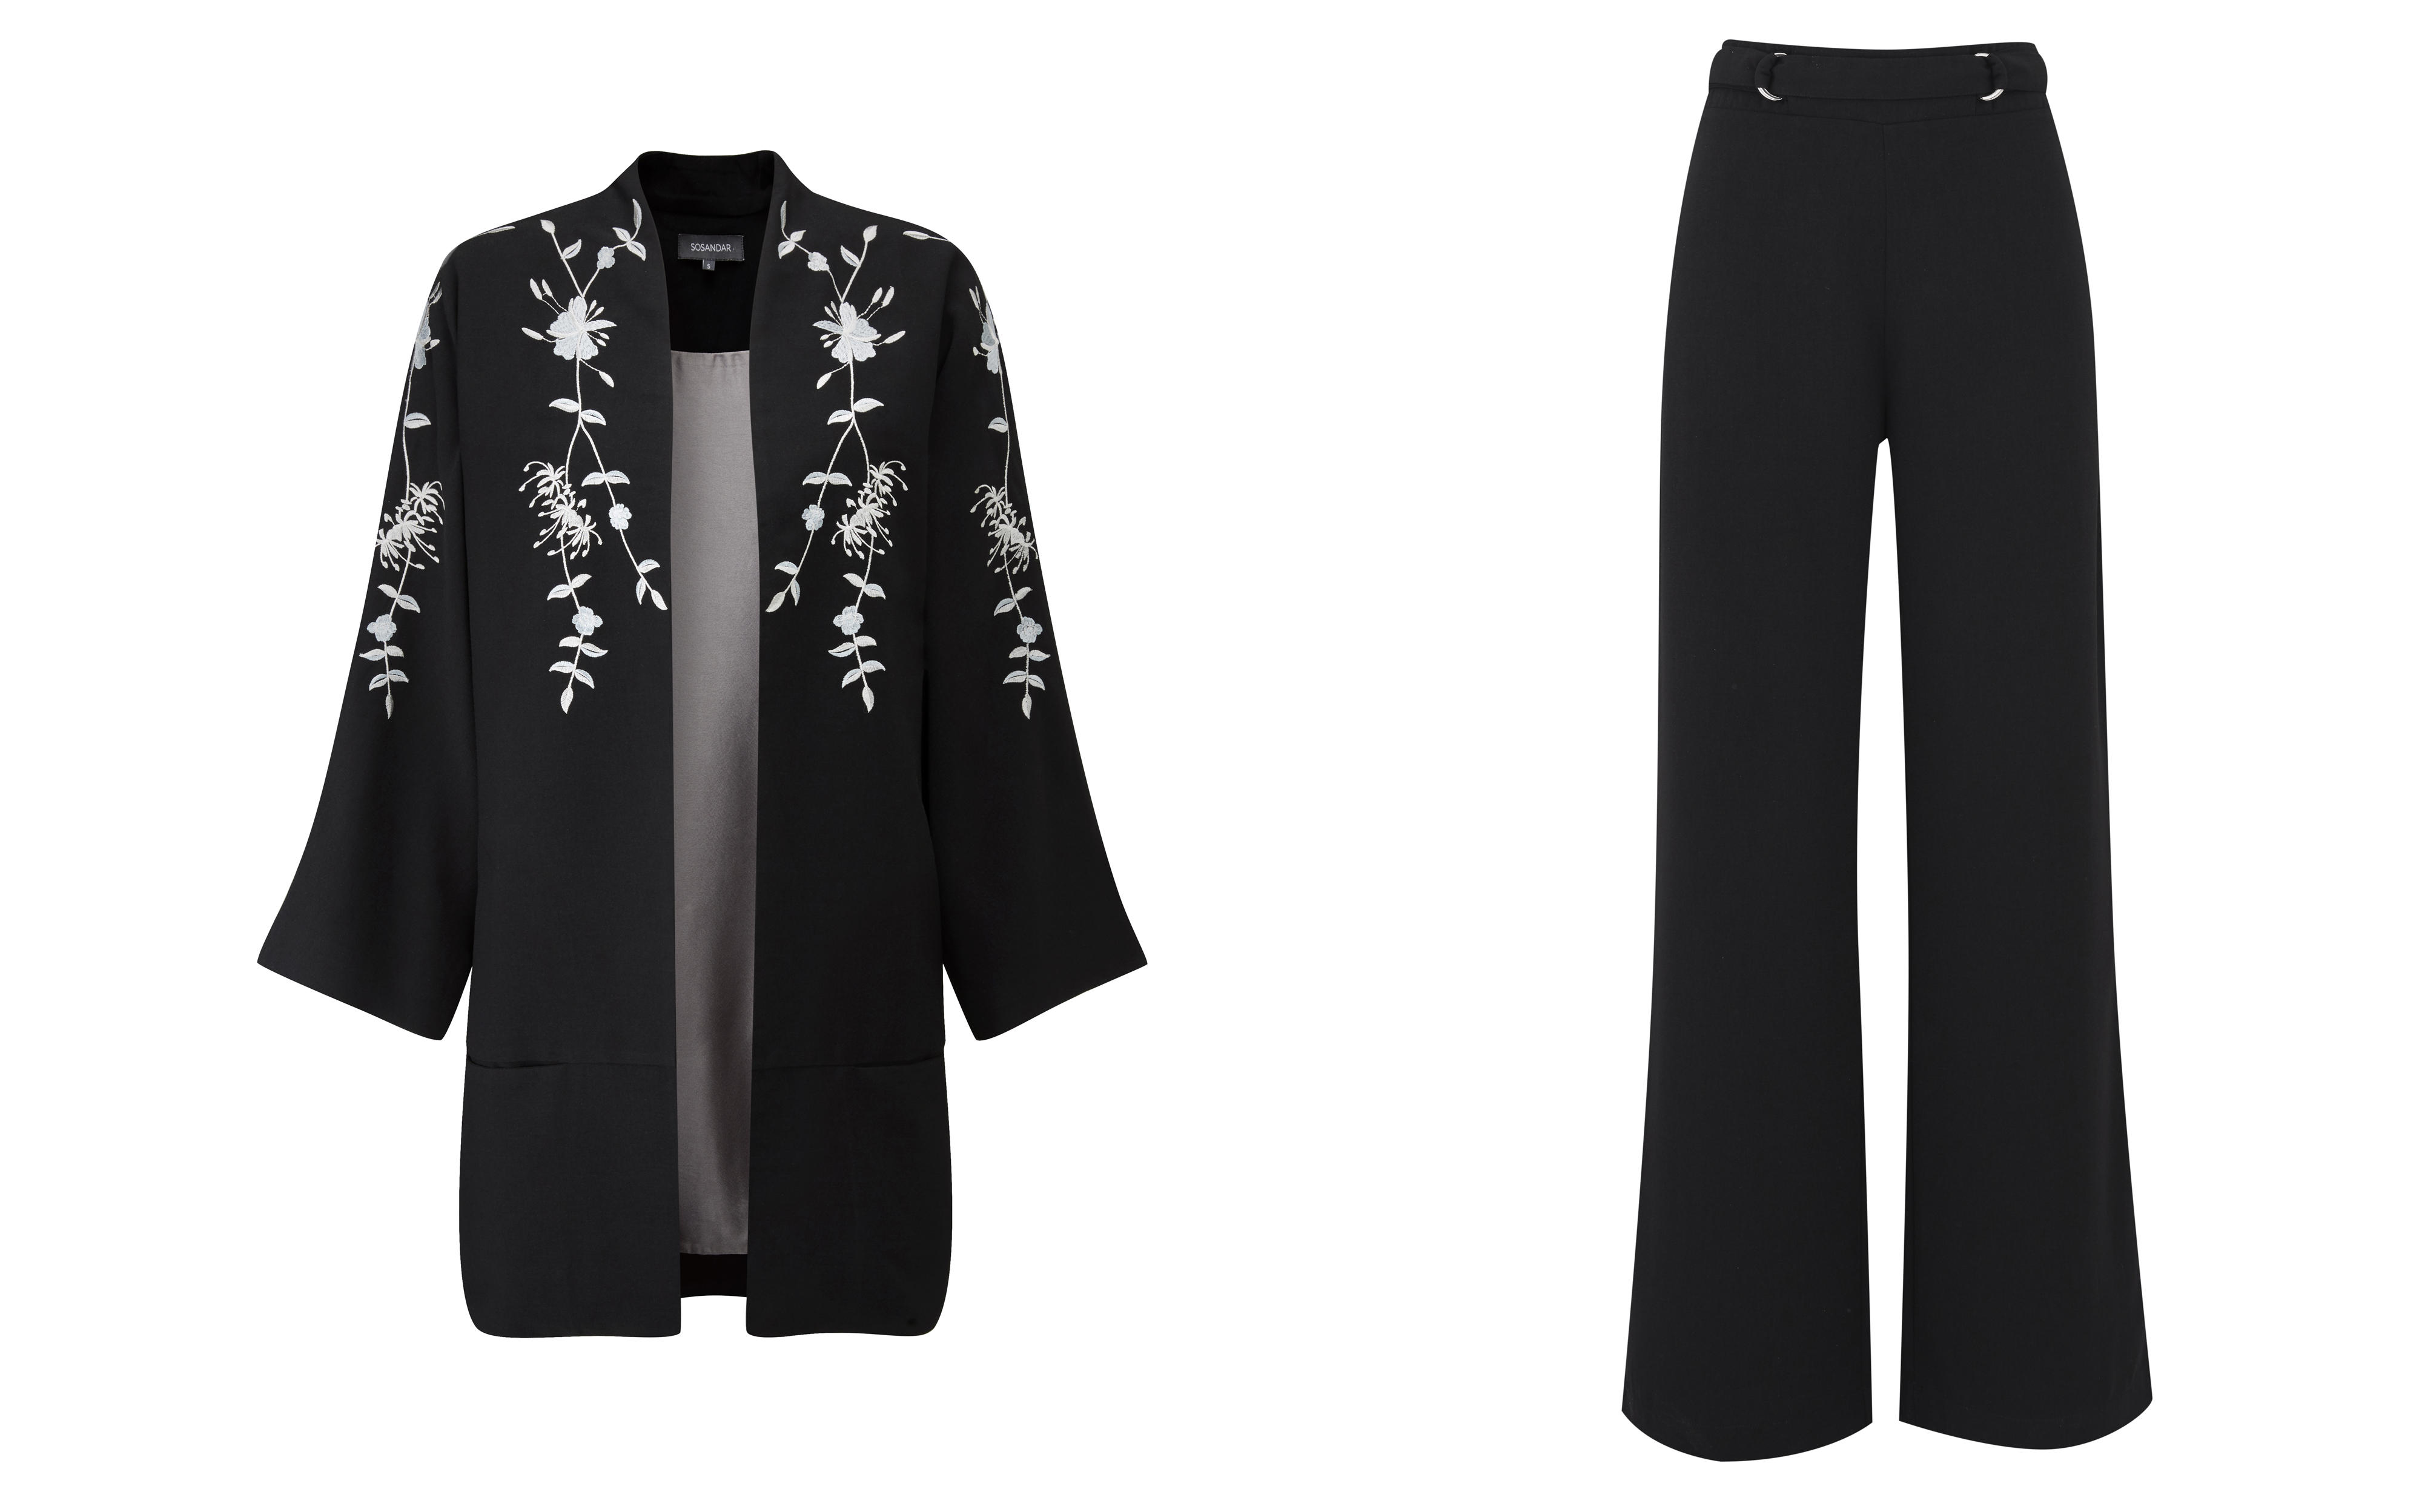 Sosandar Black Embroidered Kimono and Black Wide Leg Trousers